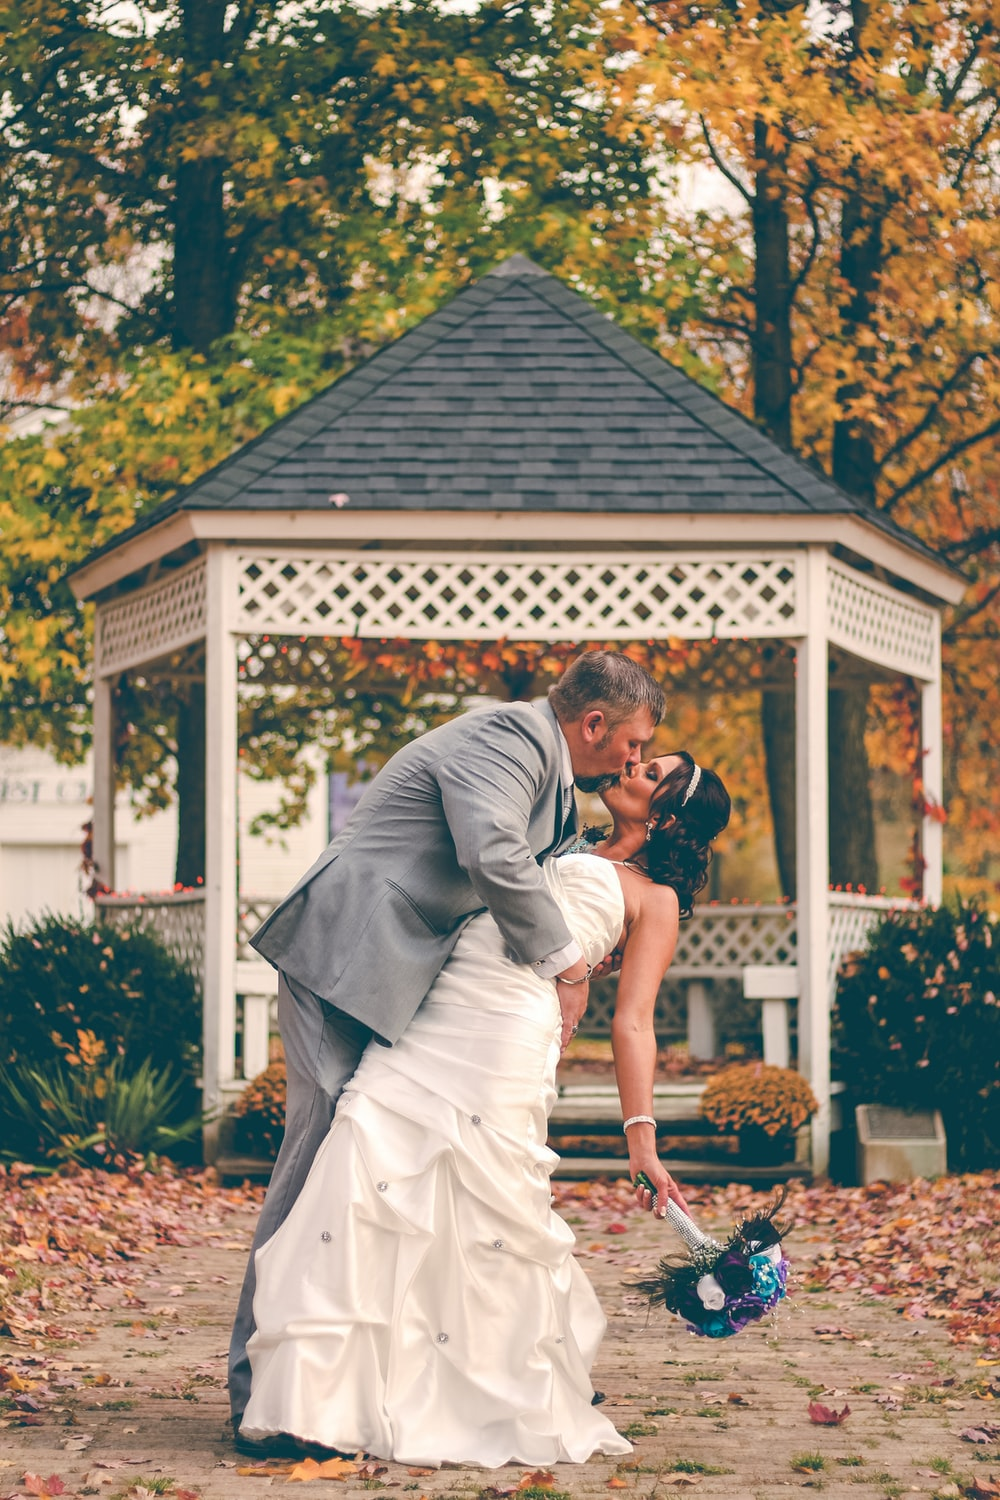 Groom Dips Bride As They Kiss In Front Of A Gazebo